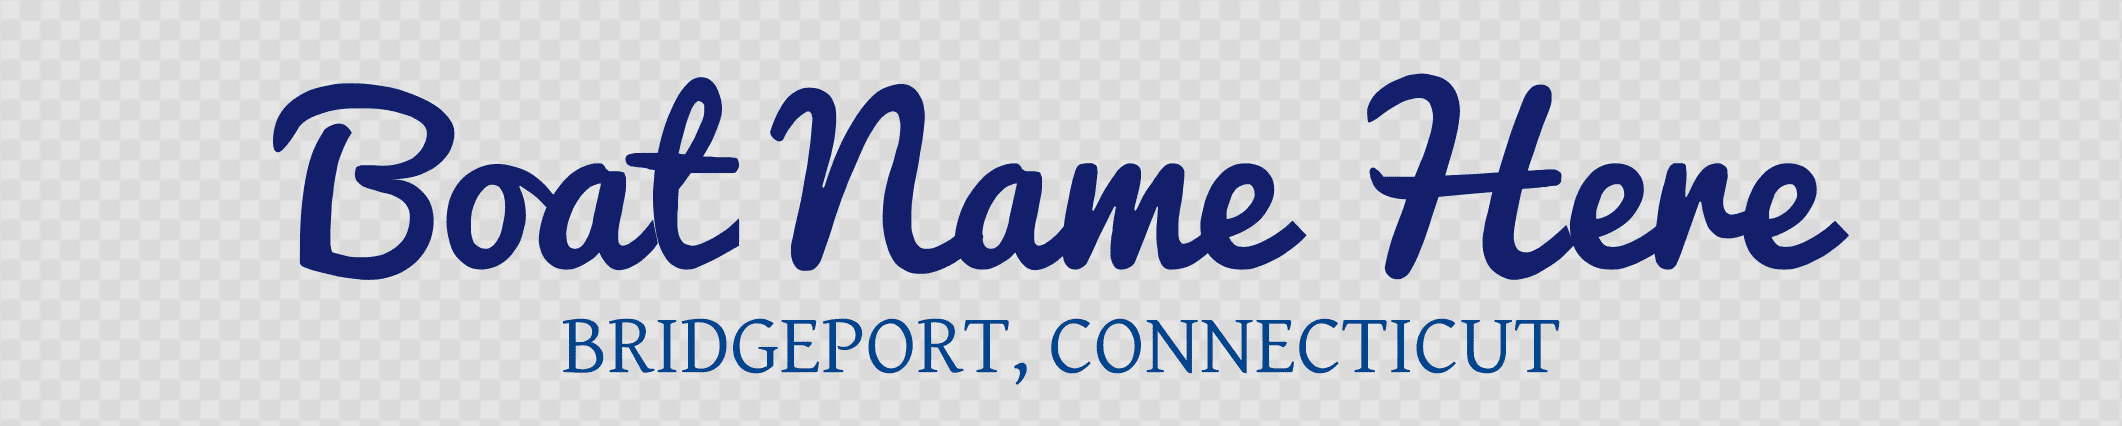 Connecticut hailing port template